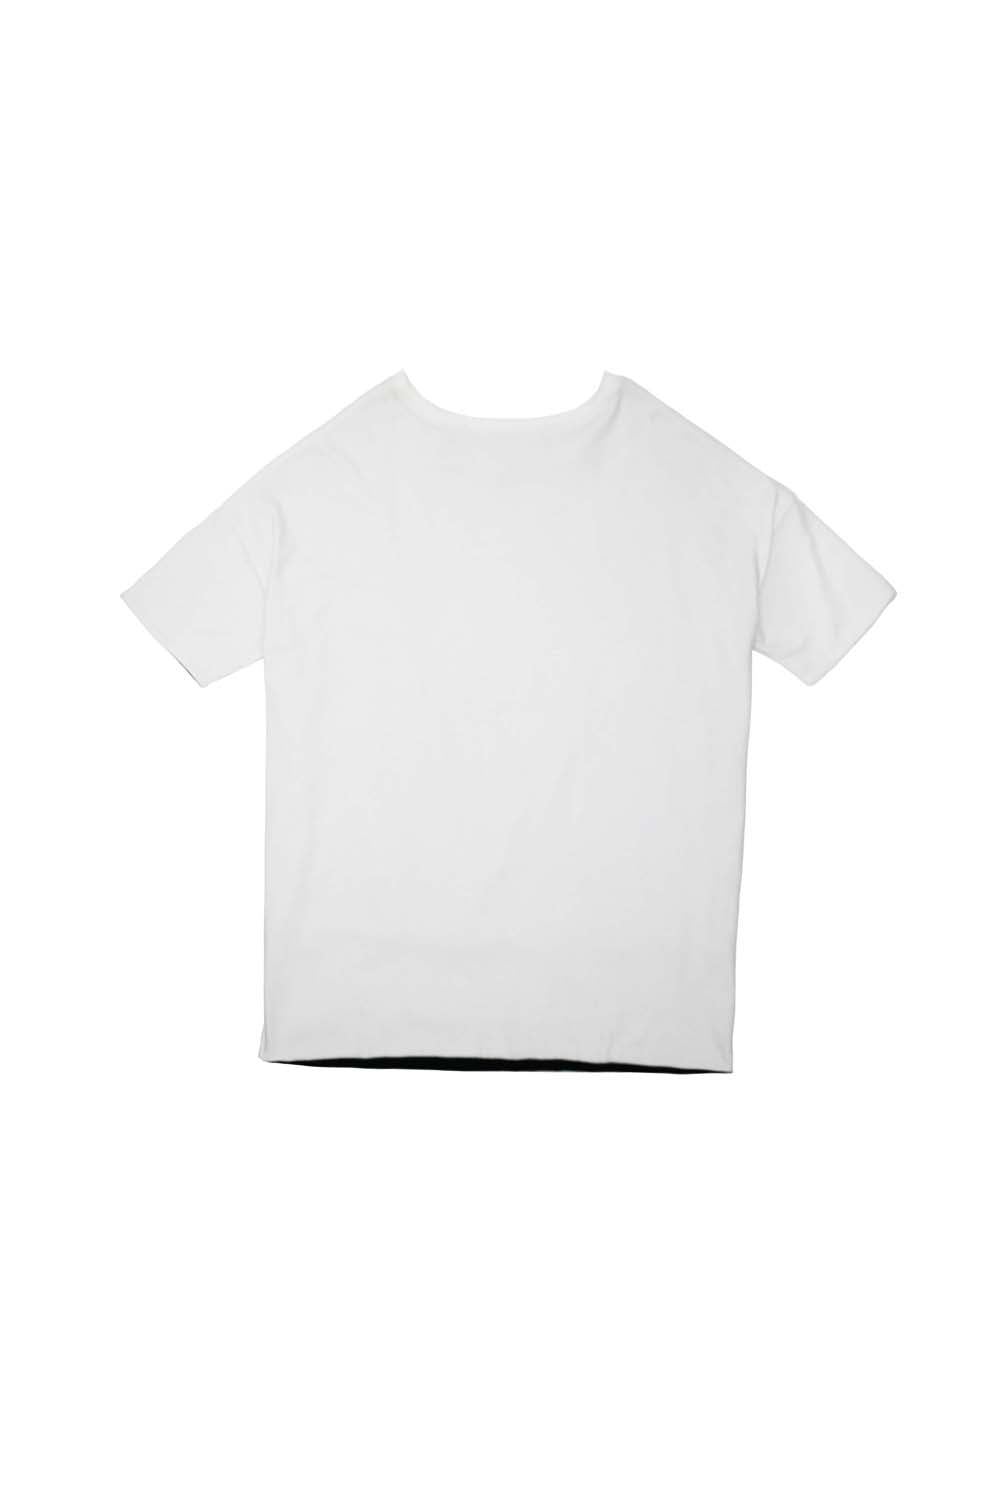 2019SS<br>Double-Face Big Tee<br>(white)